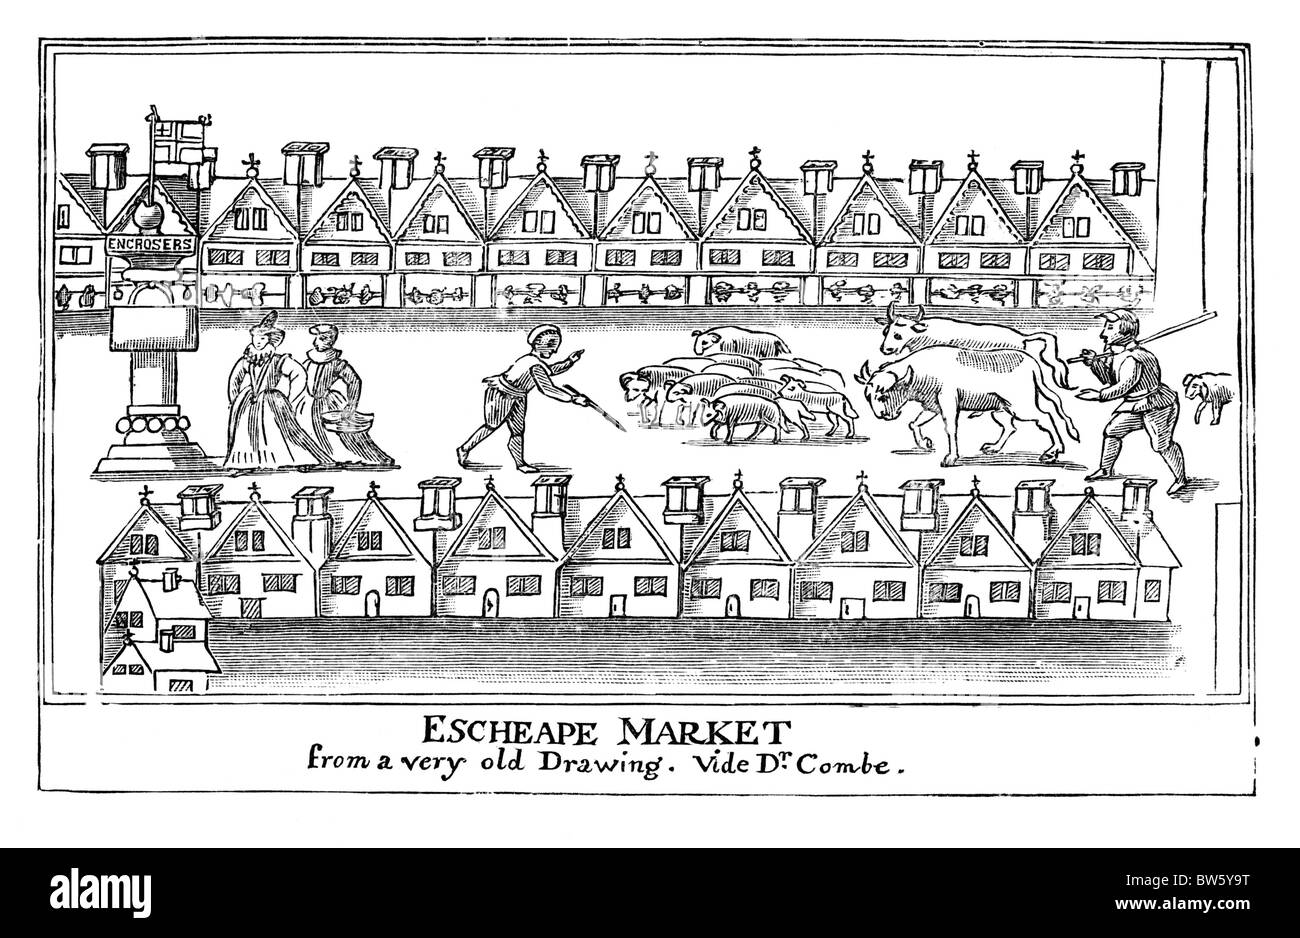 East Cheap or Eastcheap Market, London circa 1598; Black and White Illustration; - Stock Image